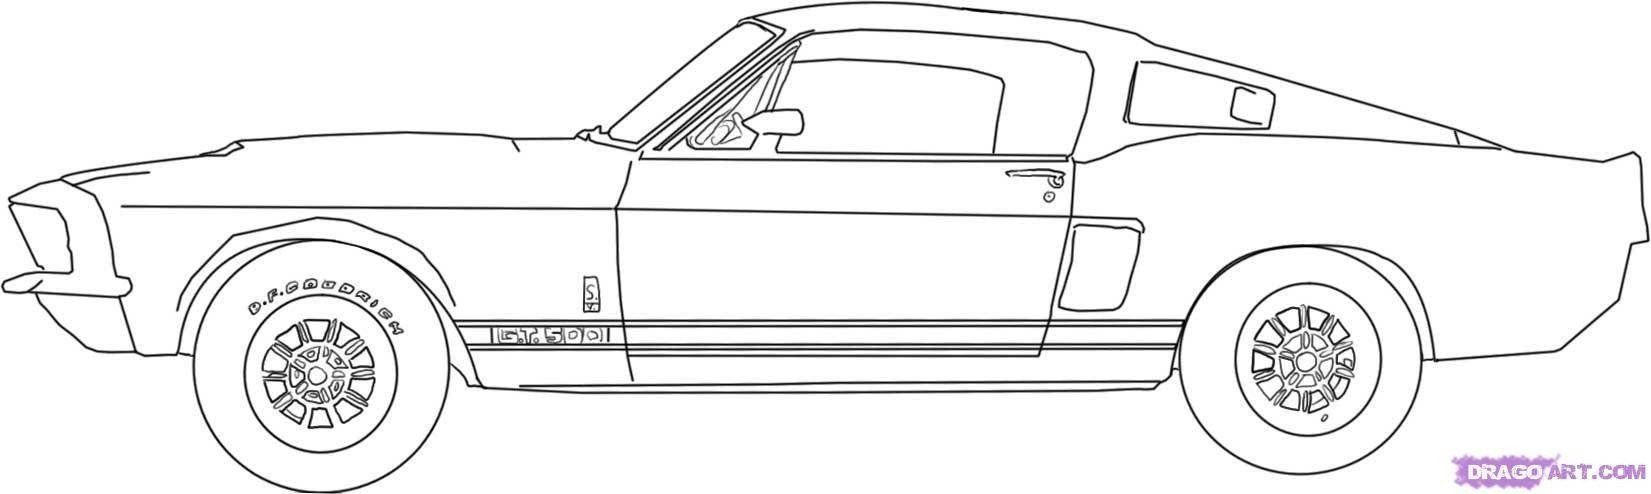 Race Car Coloring Pages Fresh Cool Car Coloring Pages in